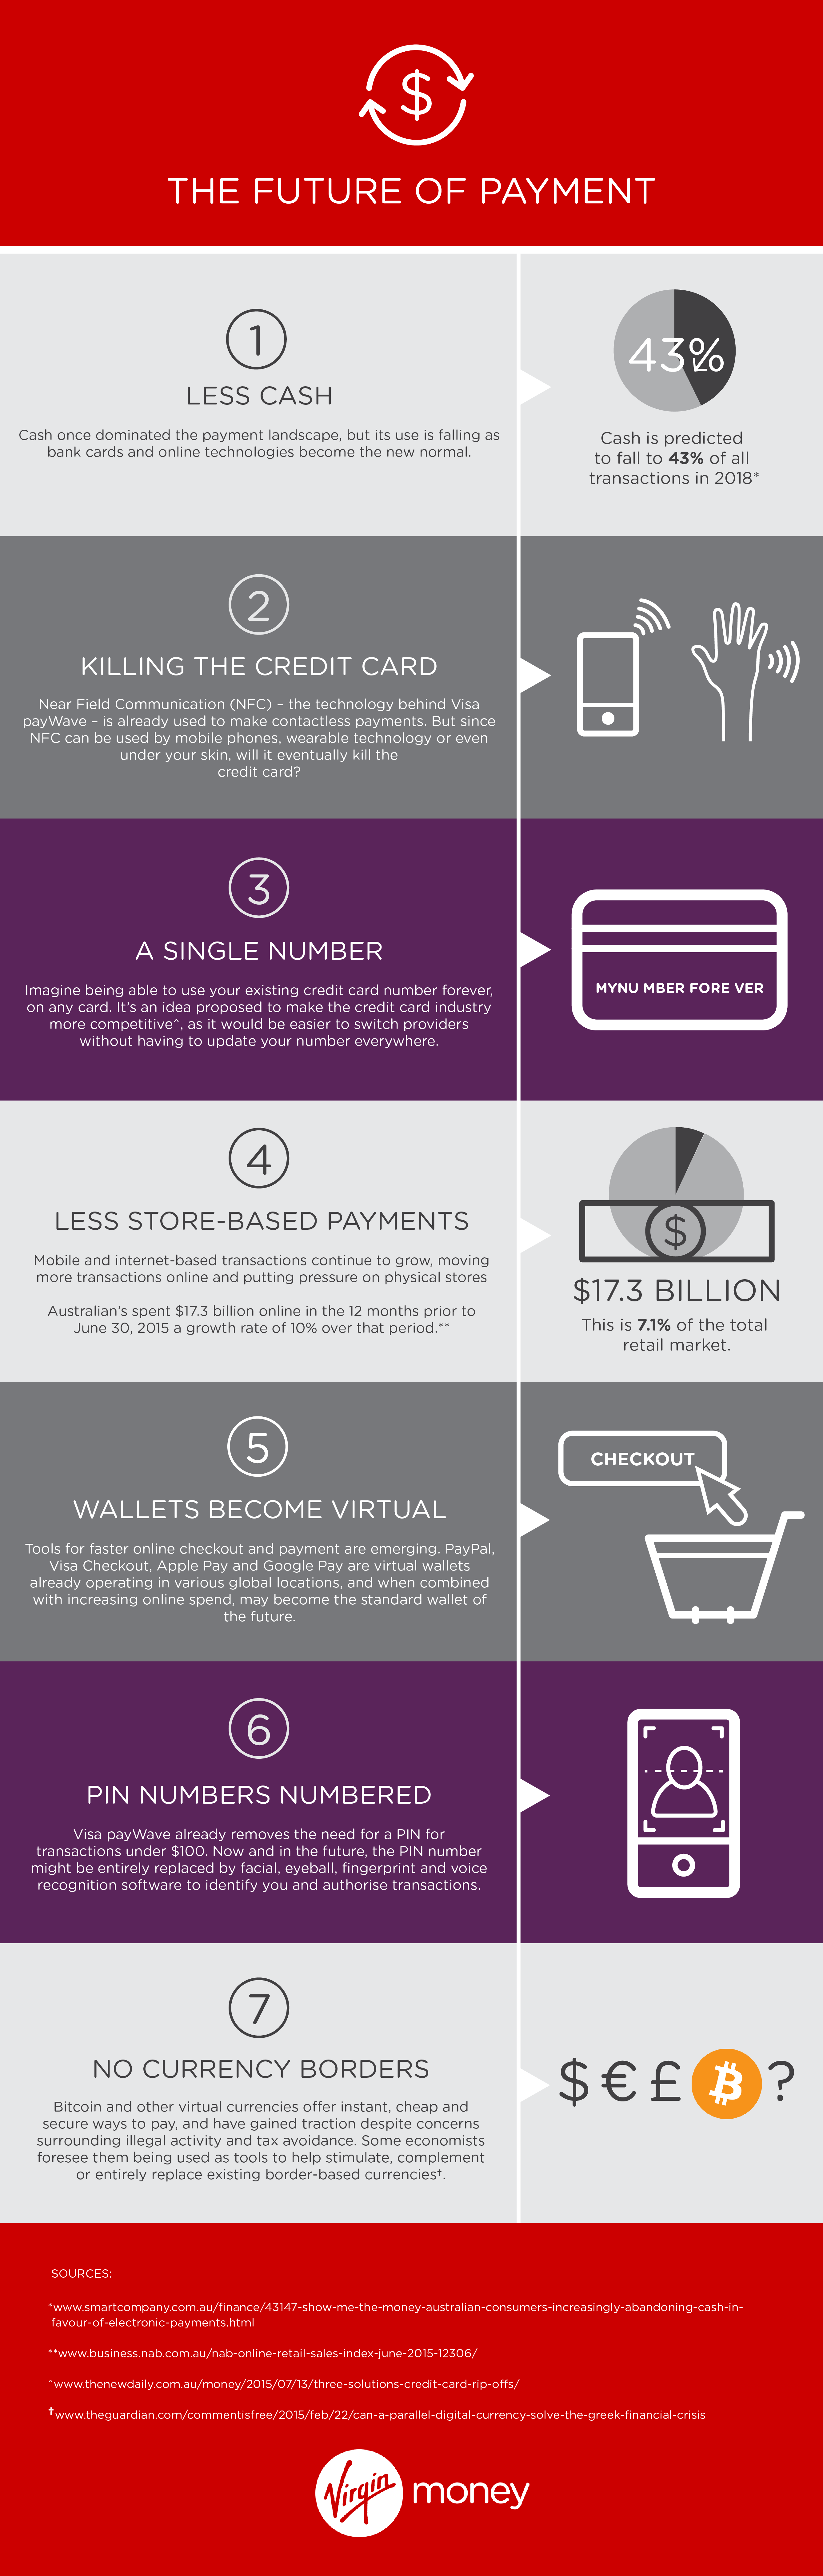 The future of payment infographic